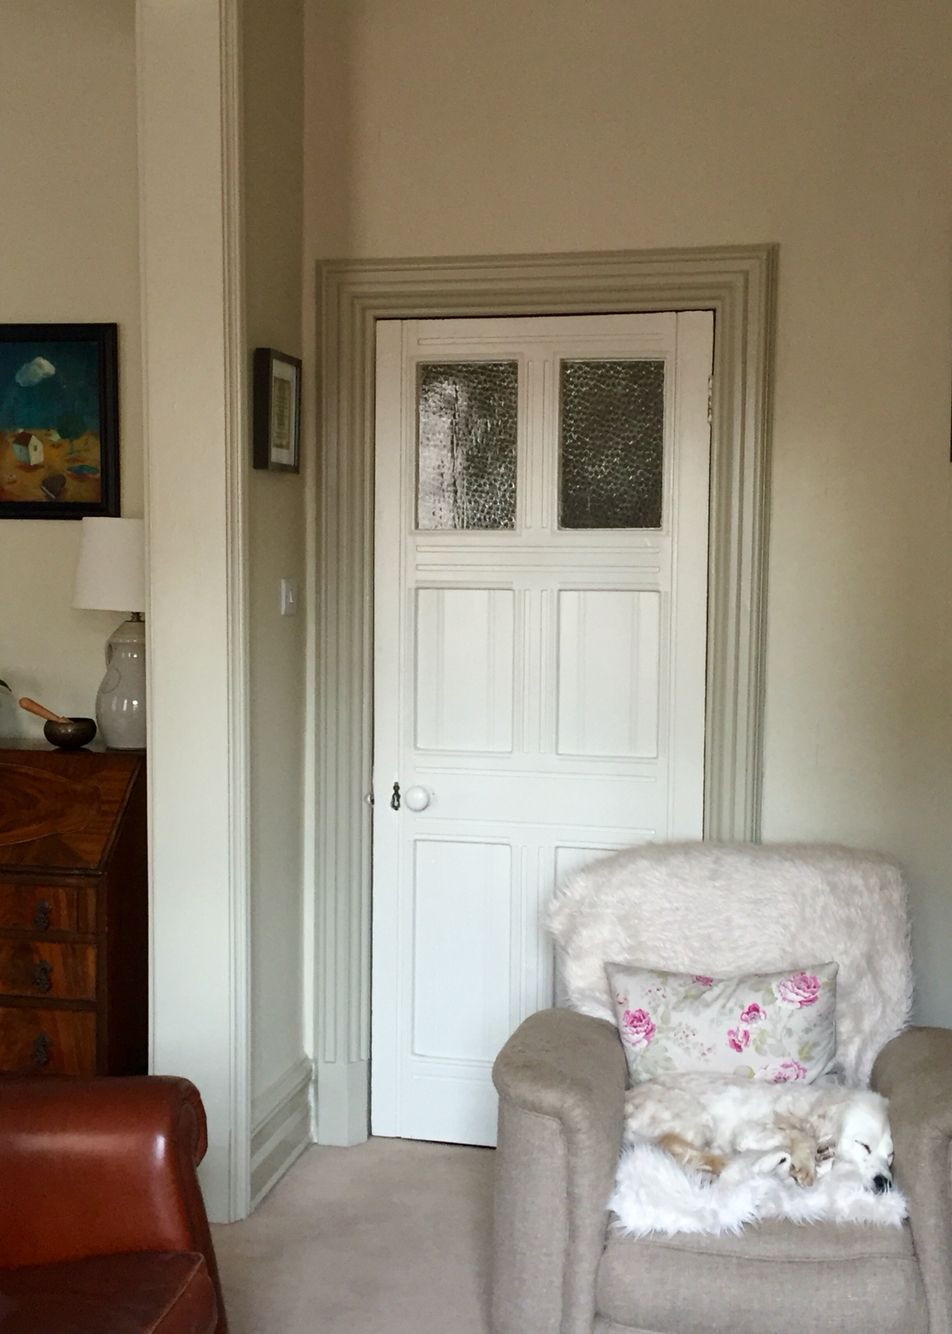 Off White Walls With Grey Trim Farrow and Ball-walls Off White, skirting-trim-Old White.